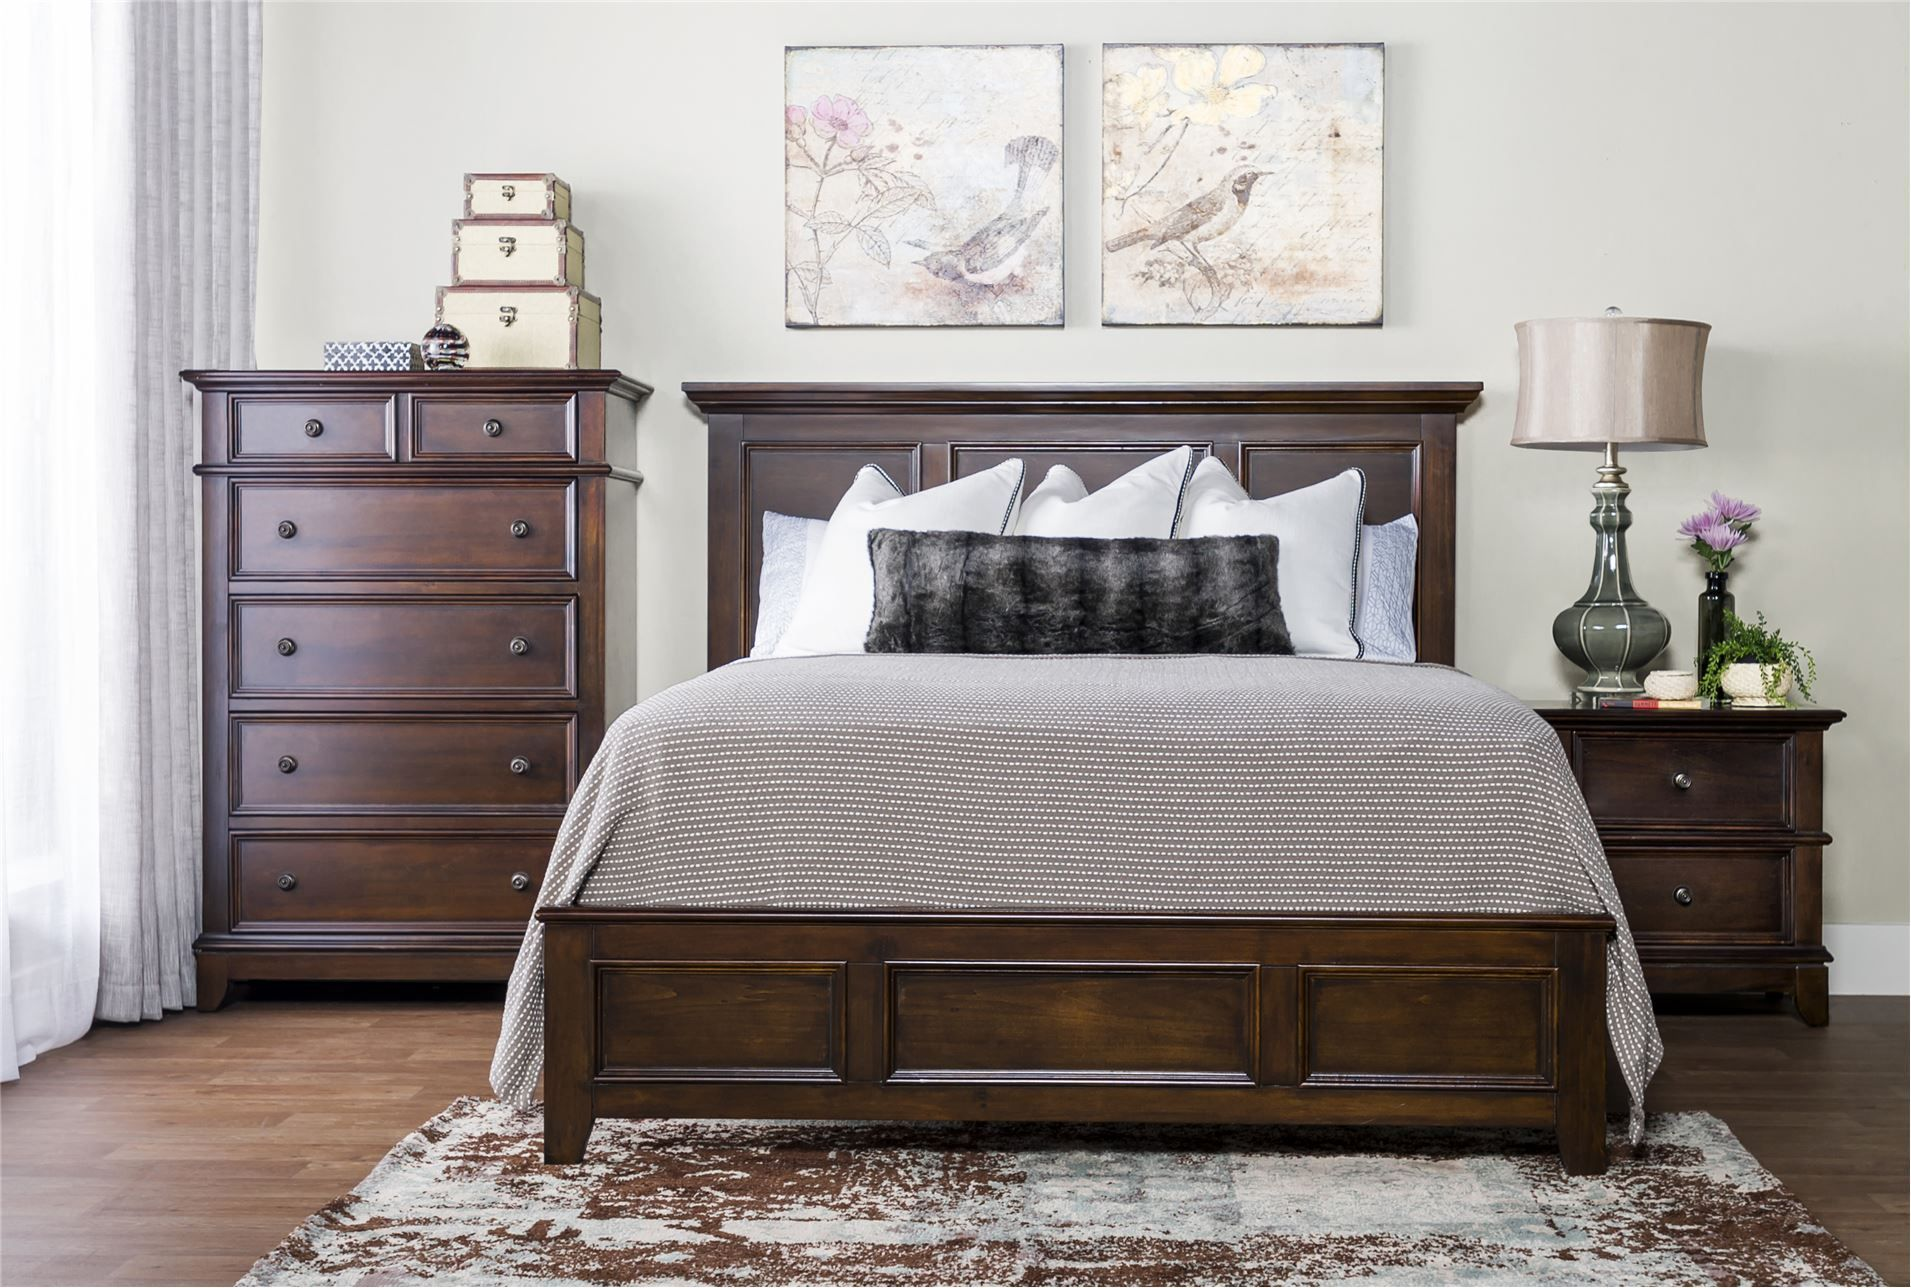 Dalton Queen Panel Bed Living spaces furniture, Bedroom